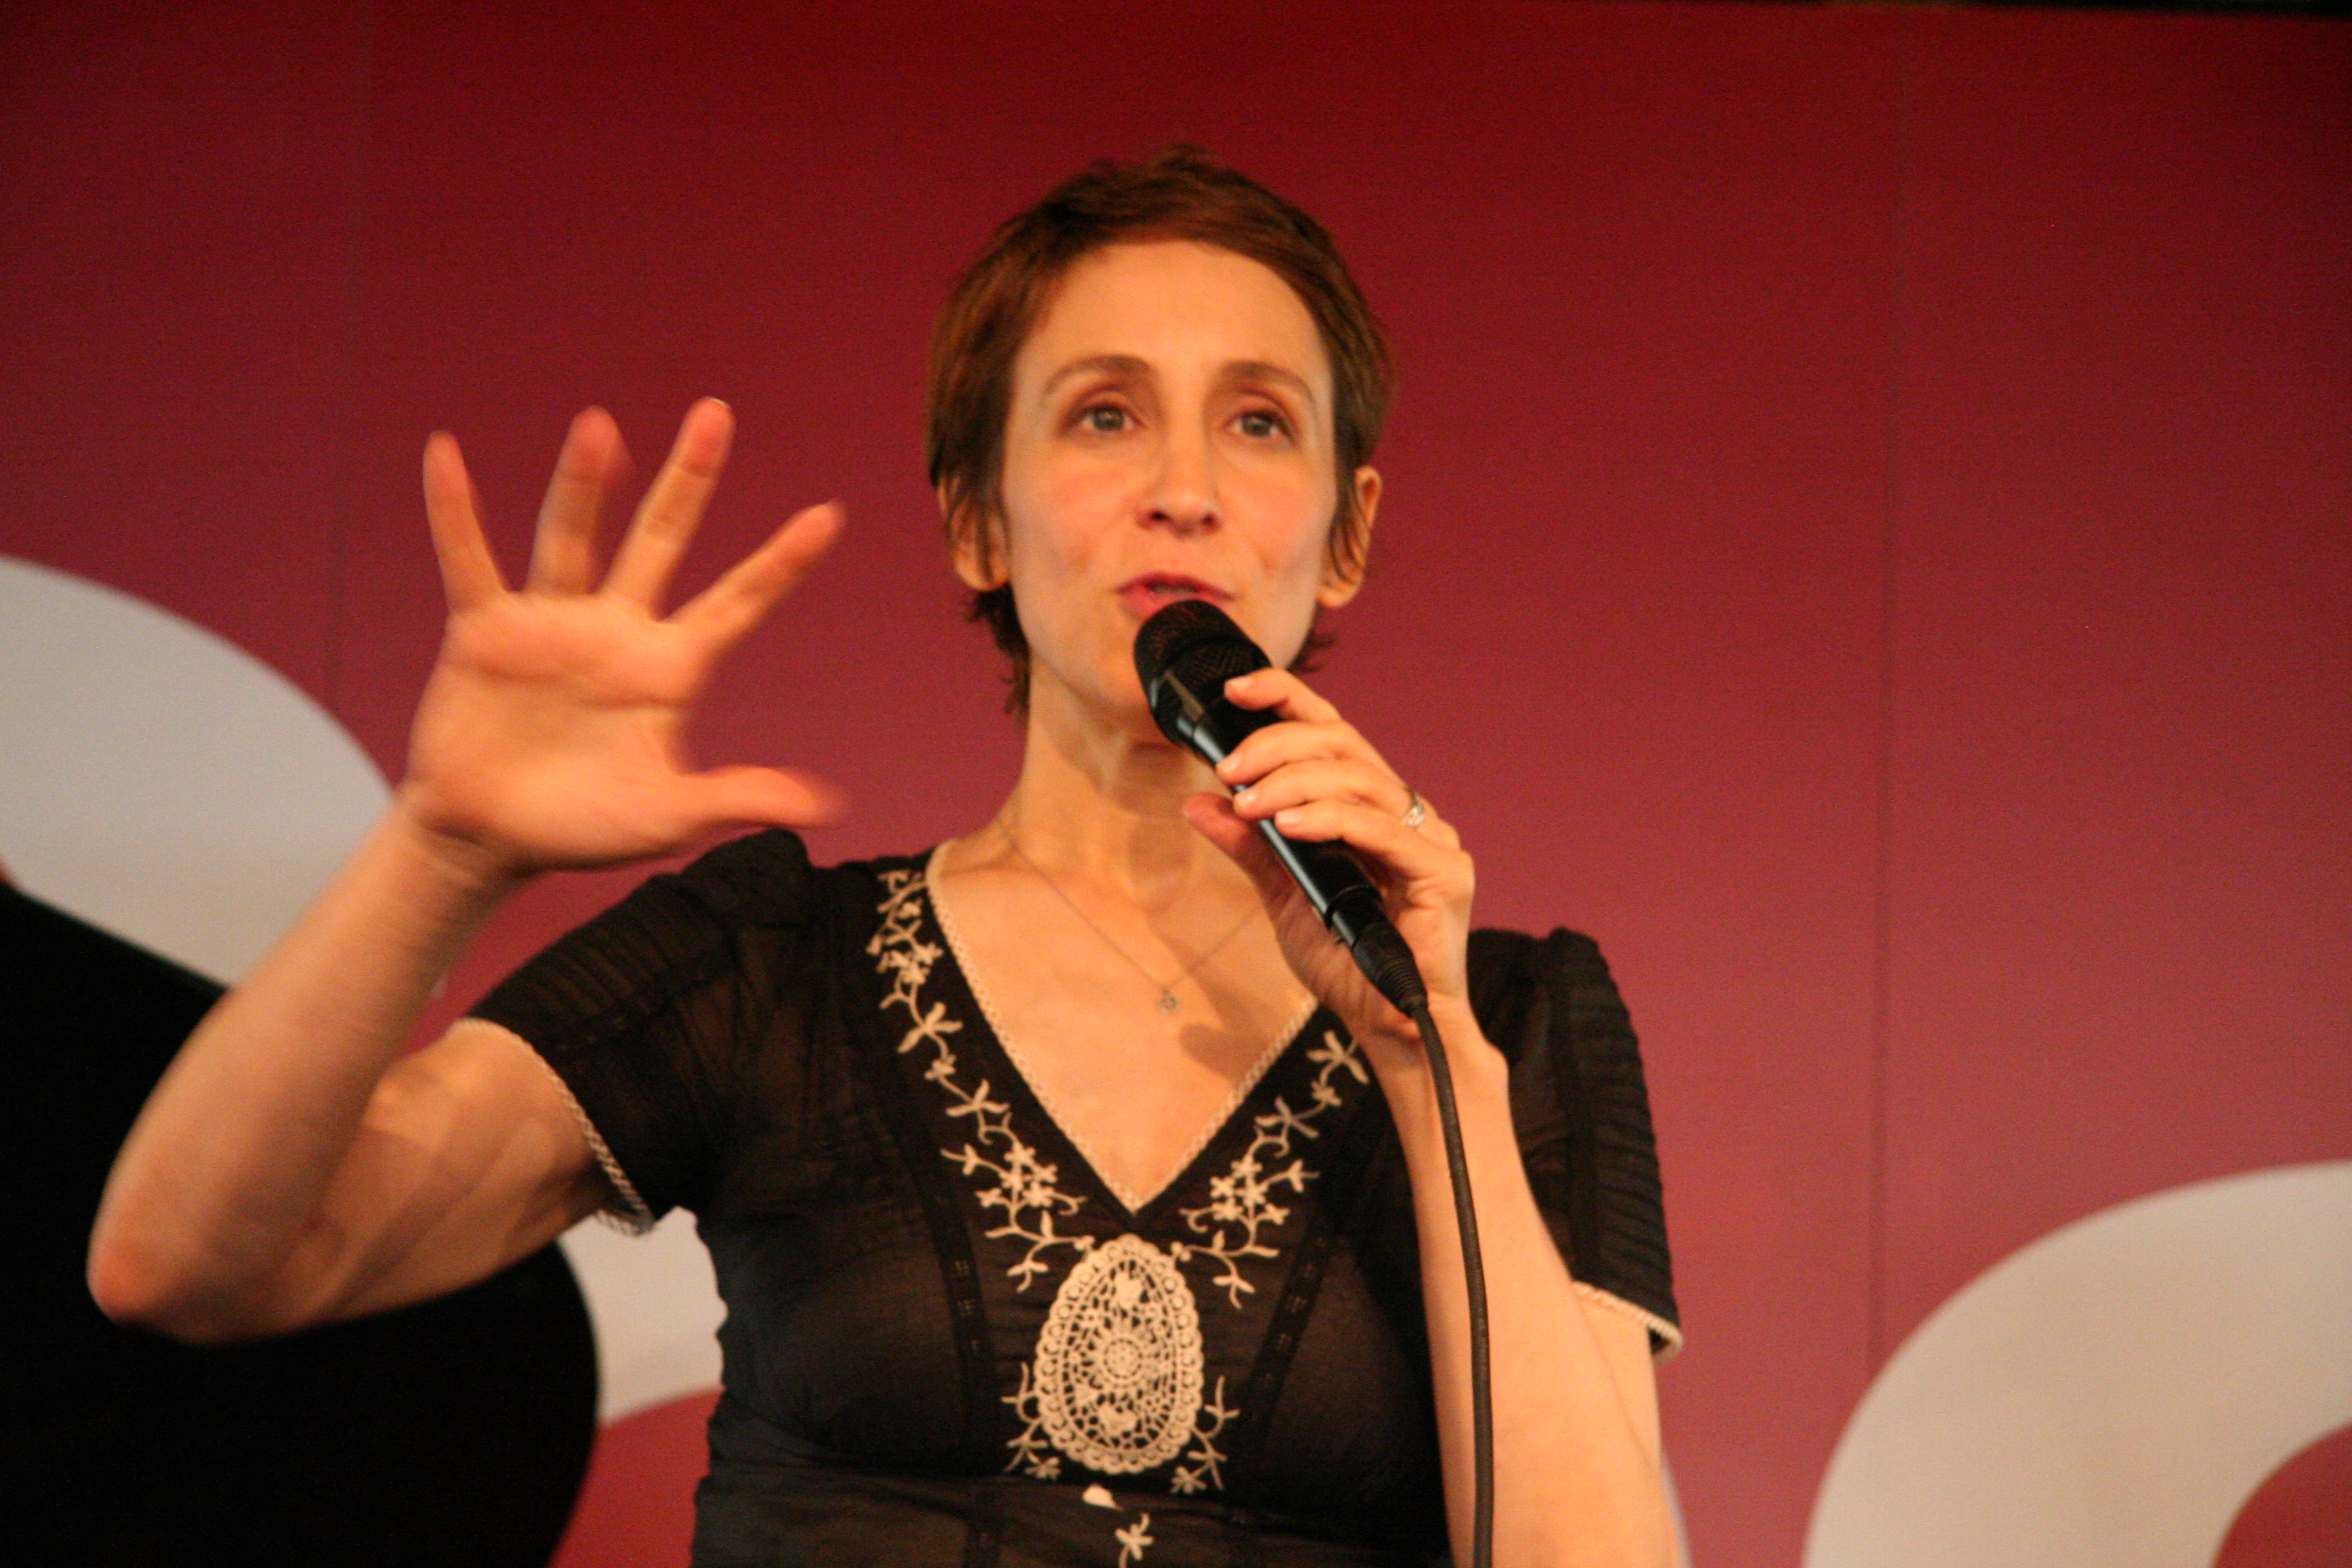 File:Stacey Kent 20070912 Fnac 09.jpg - Wikimedia Commons